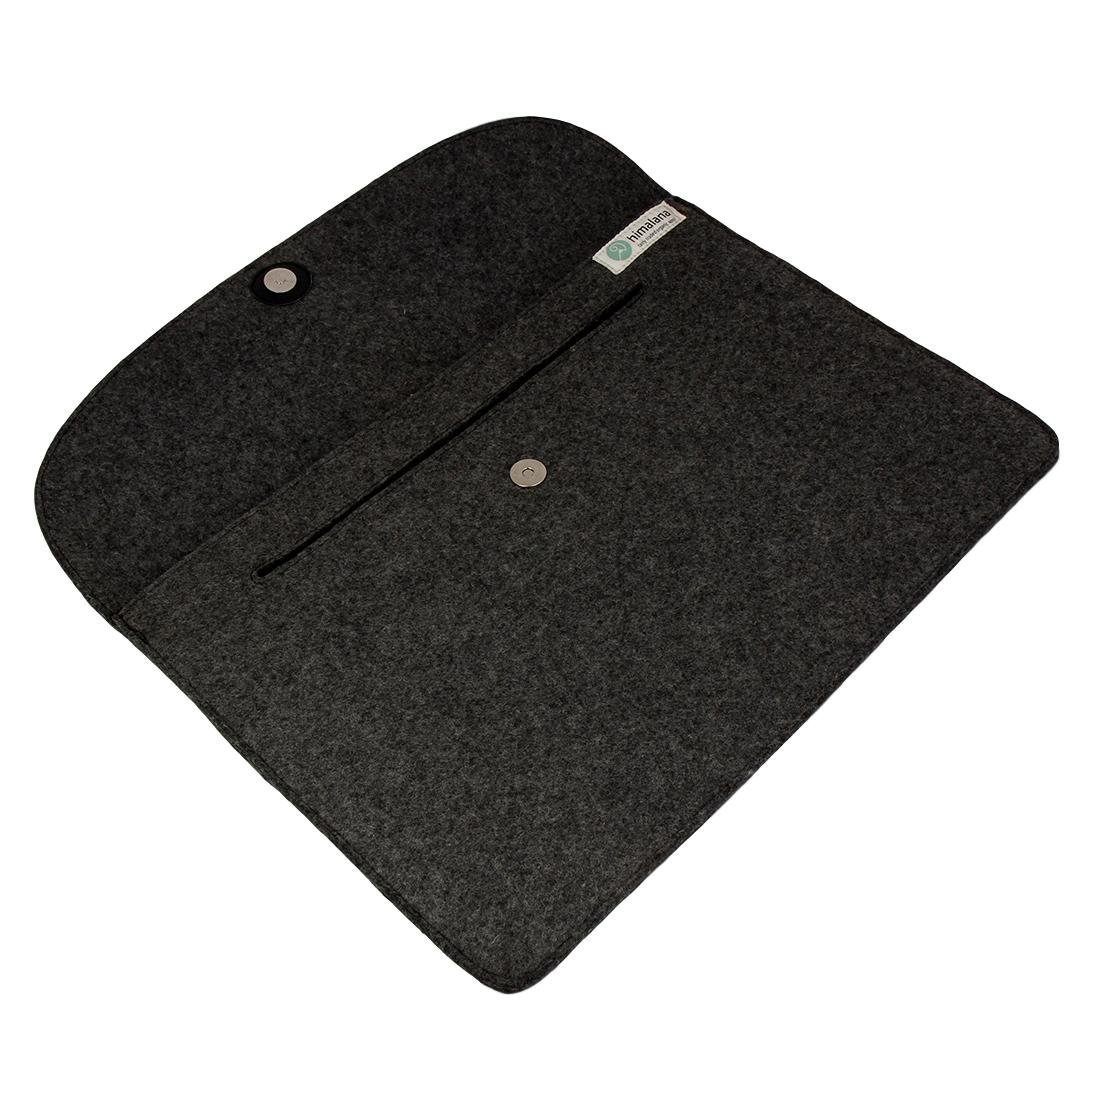 Mojopanda Virgin Organic Wool Felt 13-13.5 Inch Macbooks, Laptop Grey Sleeve Case Carrying Bag With 2 Back Pouches For Mobile Phones And An Inner Packet For Tab, Ipad Or Power Chord. by MOJO PANDA (Image #5)